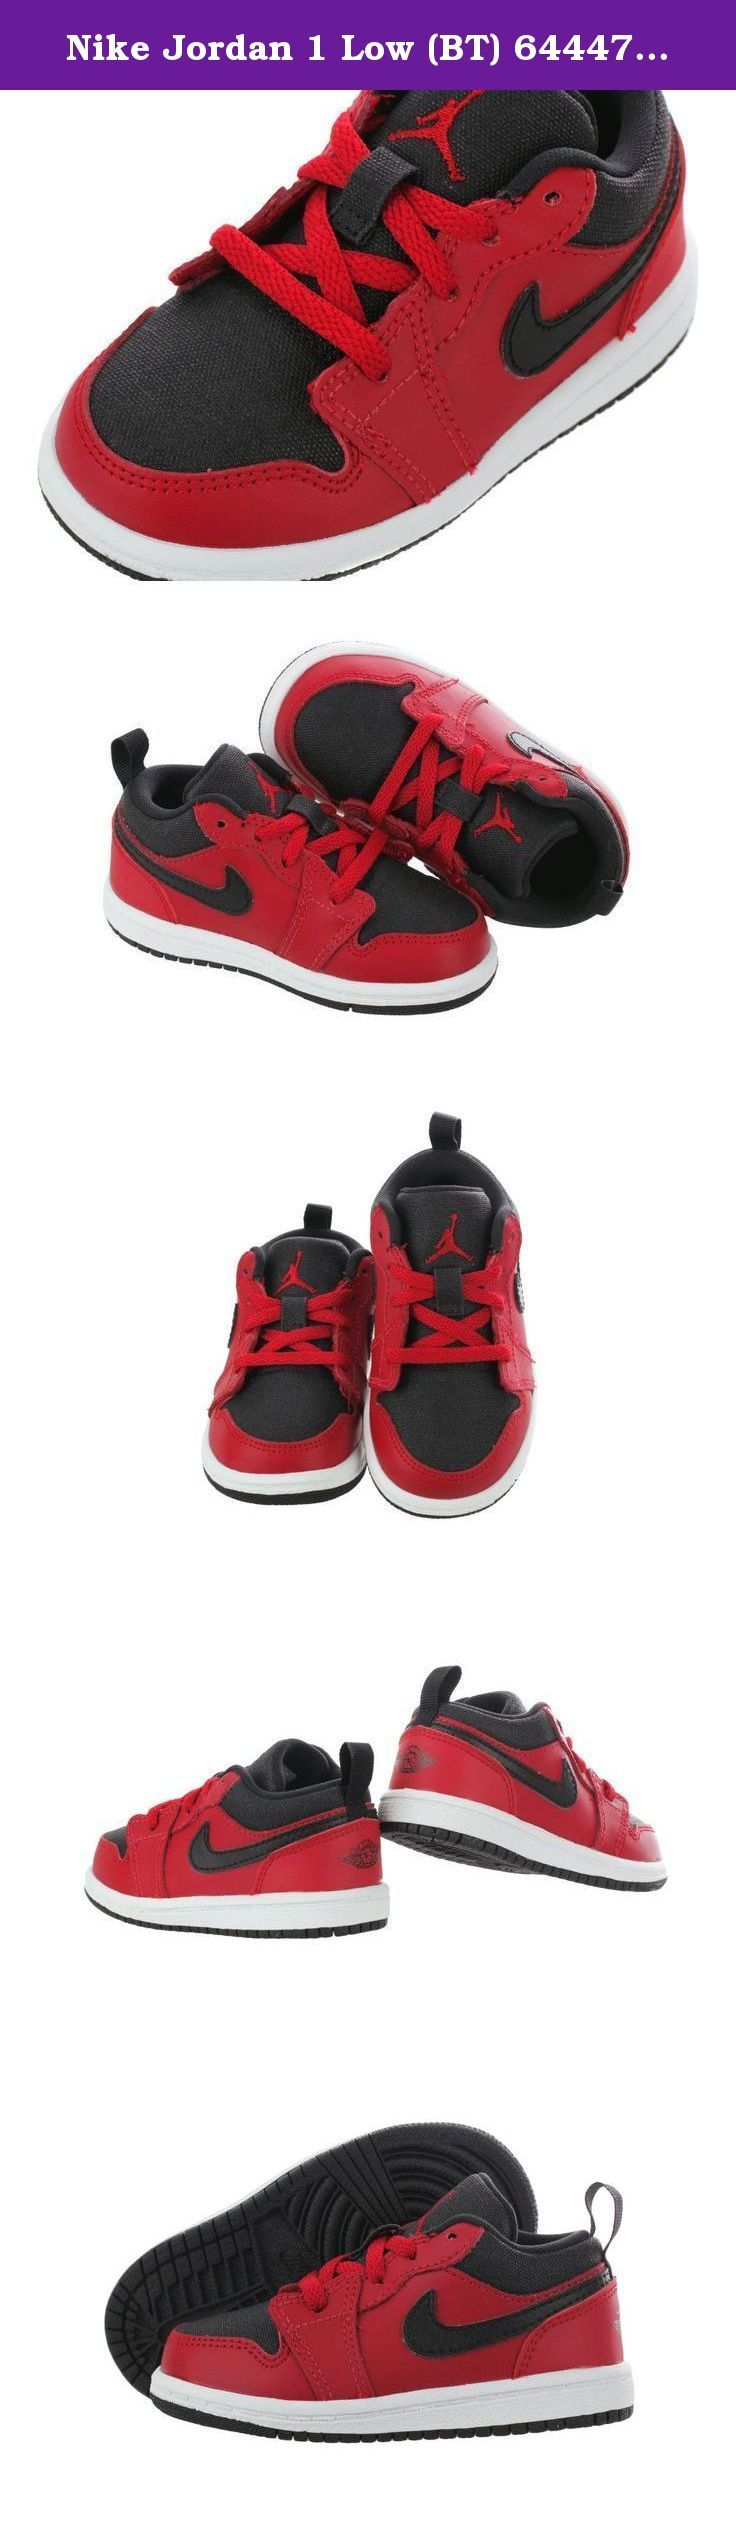 Nike Jordan 1 Low (BT) 644476-602 Toddler Casual Shoes 5 M US Toddler Gym Red / Black - White. Ever since its debut of the Jordan 1s it has forever changed the Air Jordan line in 1985. These ageless basketball shoes were introduced by Michael Jordan in black and red color way only but since then have produced many color ways. Get your little one started on the right foot with the Jordan.